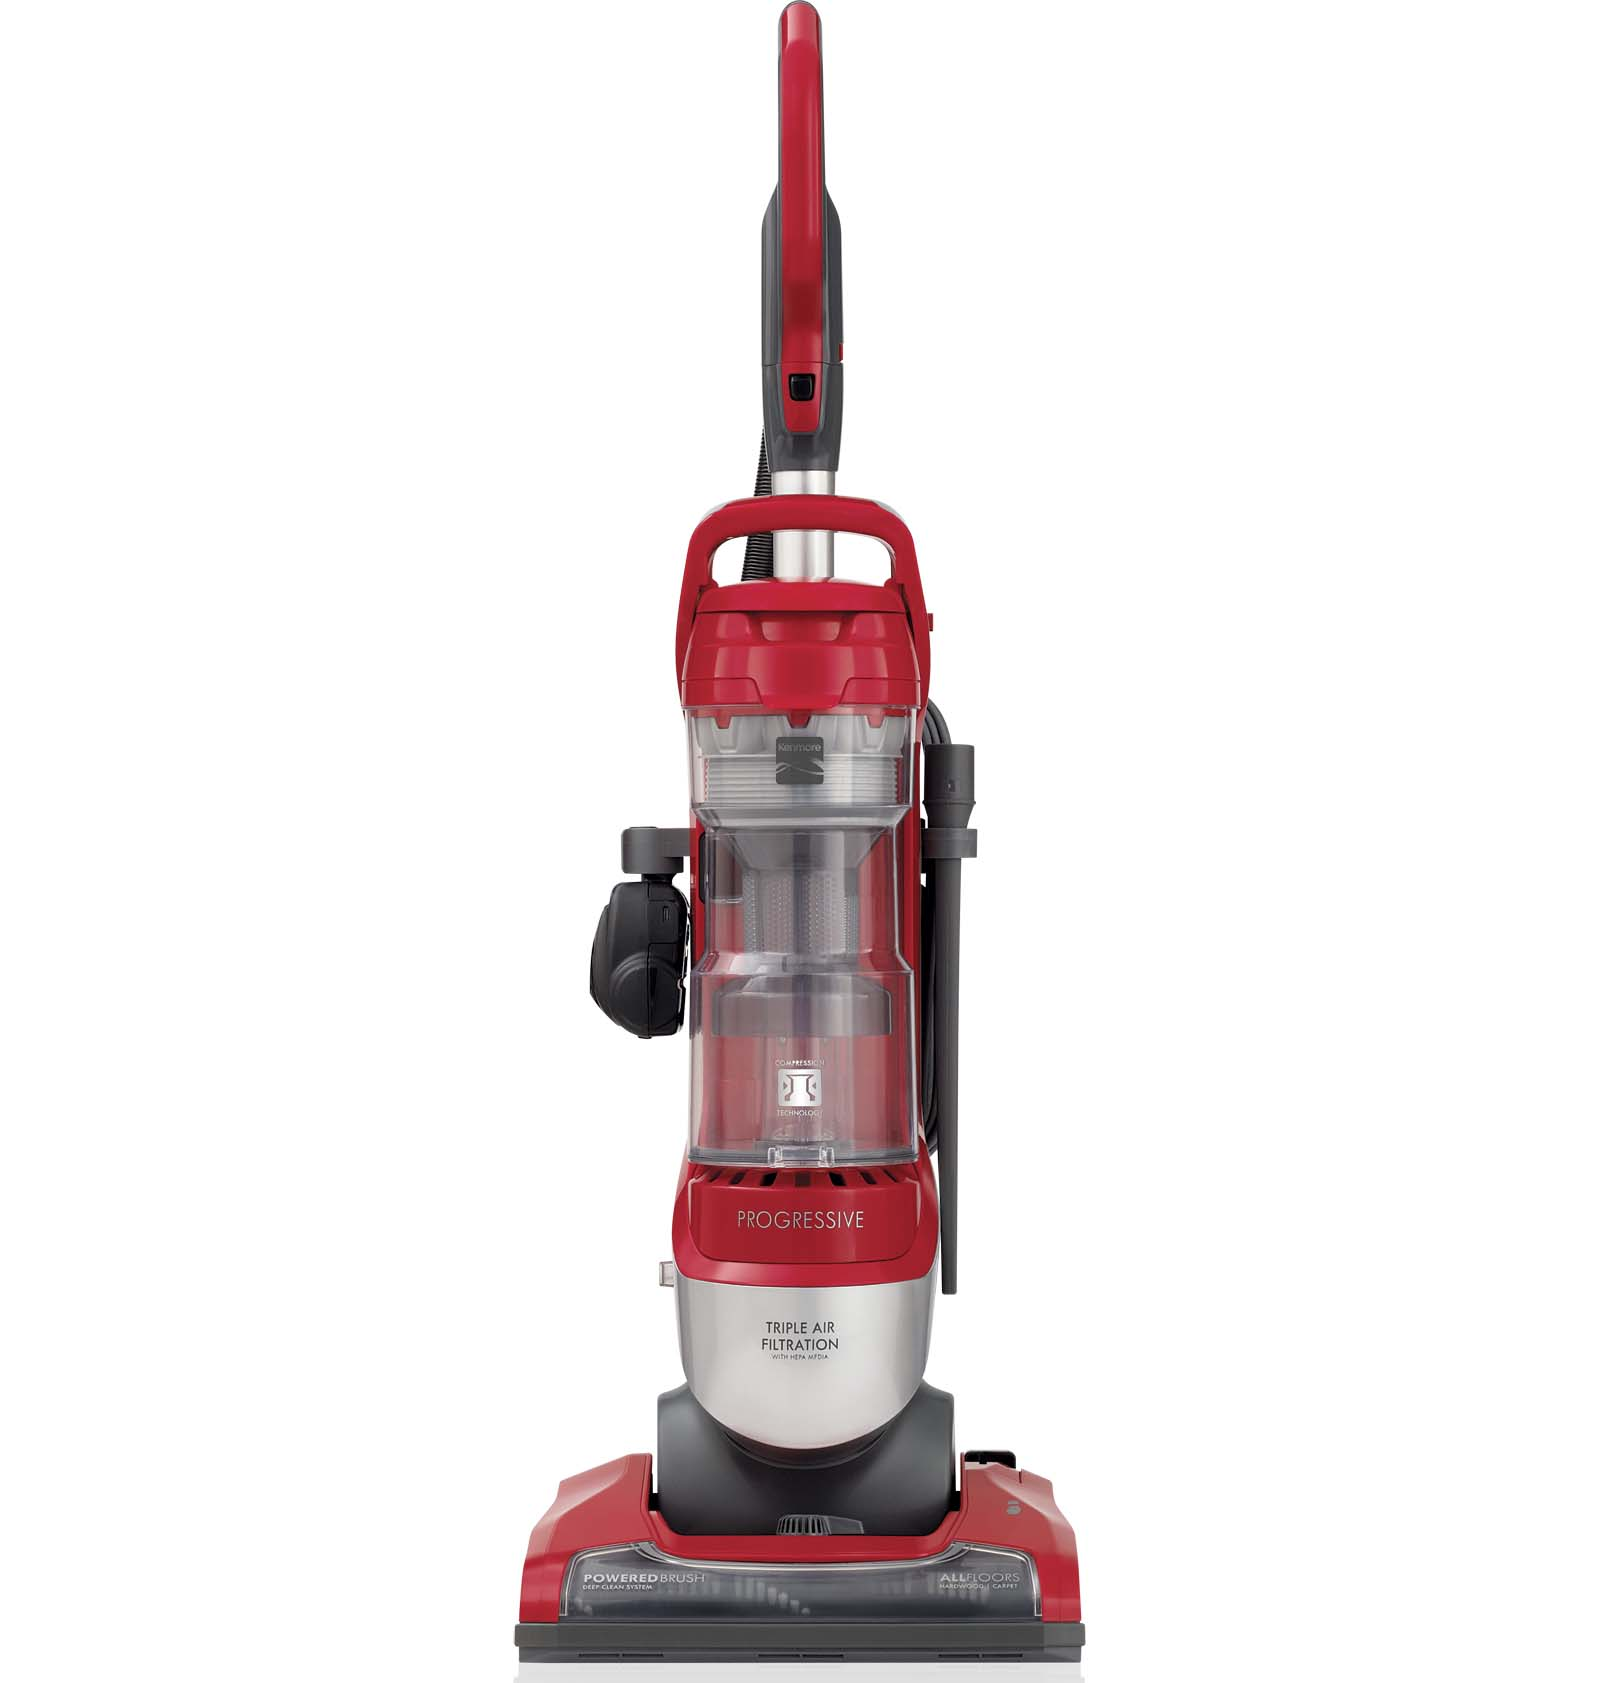 Image of Kenmore 10135 Pet-Friendly Progressive Bagless Upright Vacuum - Silver/Red